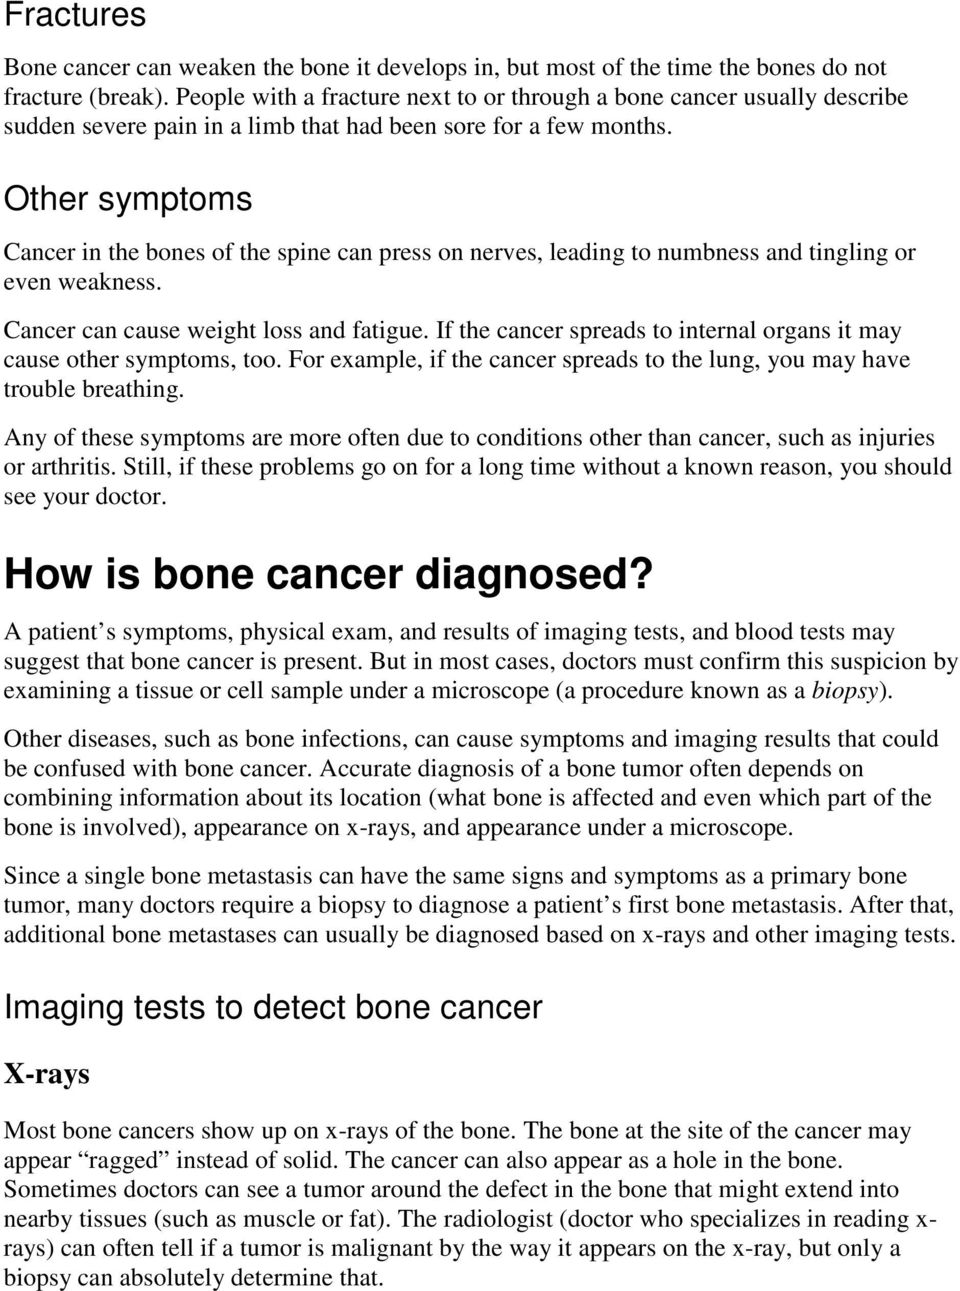 Other symptoms Cancer in the bones of the spine can press on nerves, leading to numbness and tingling or even weakness. Cancer can cause weight loss and fatigue.